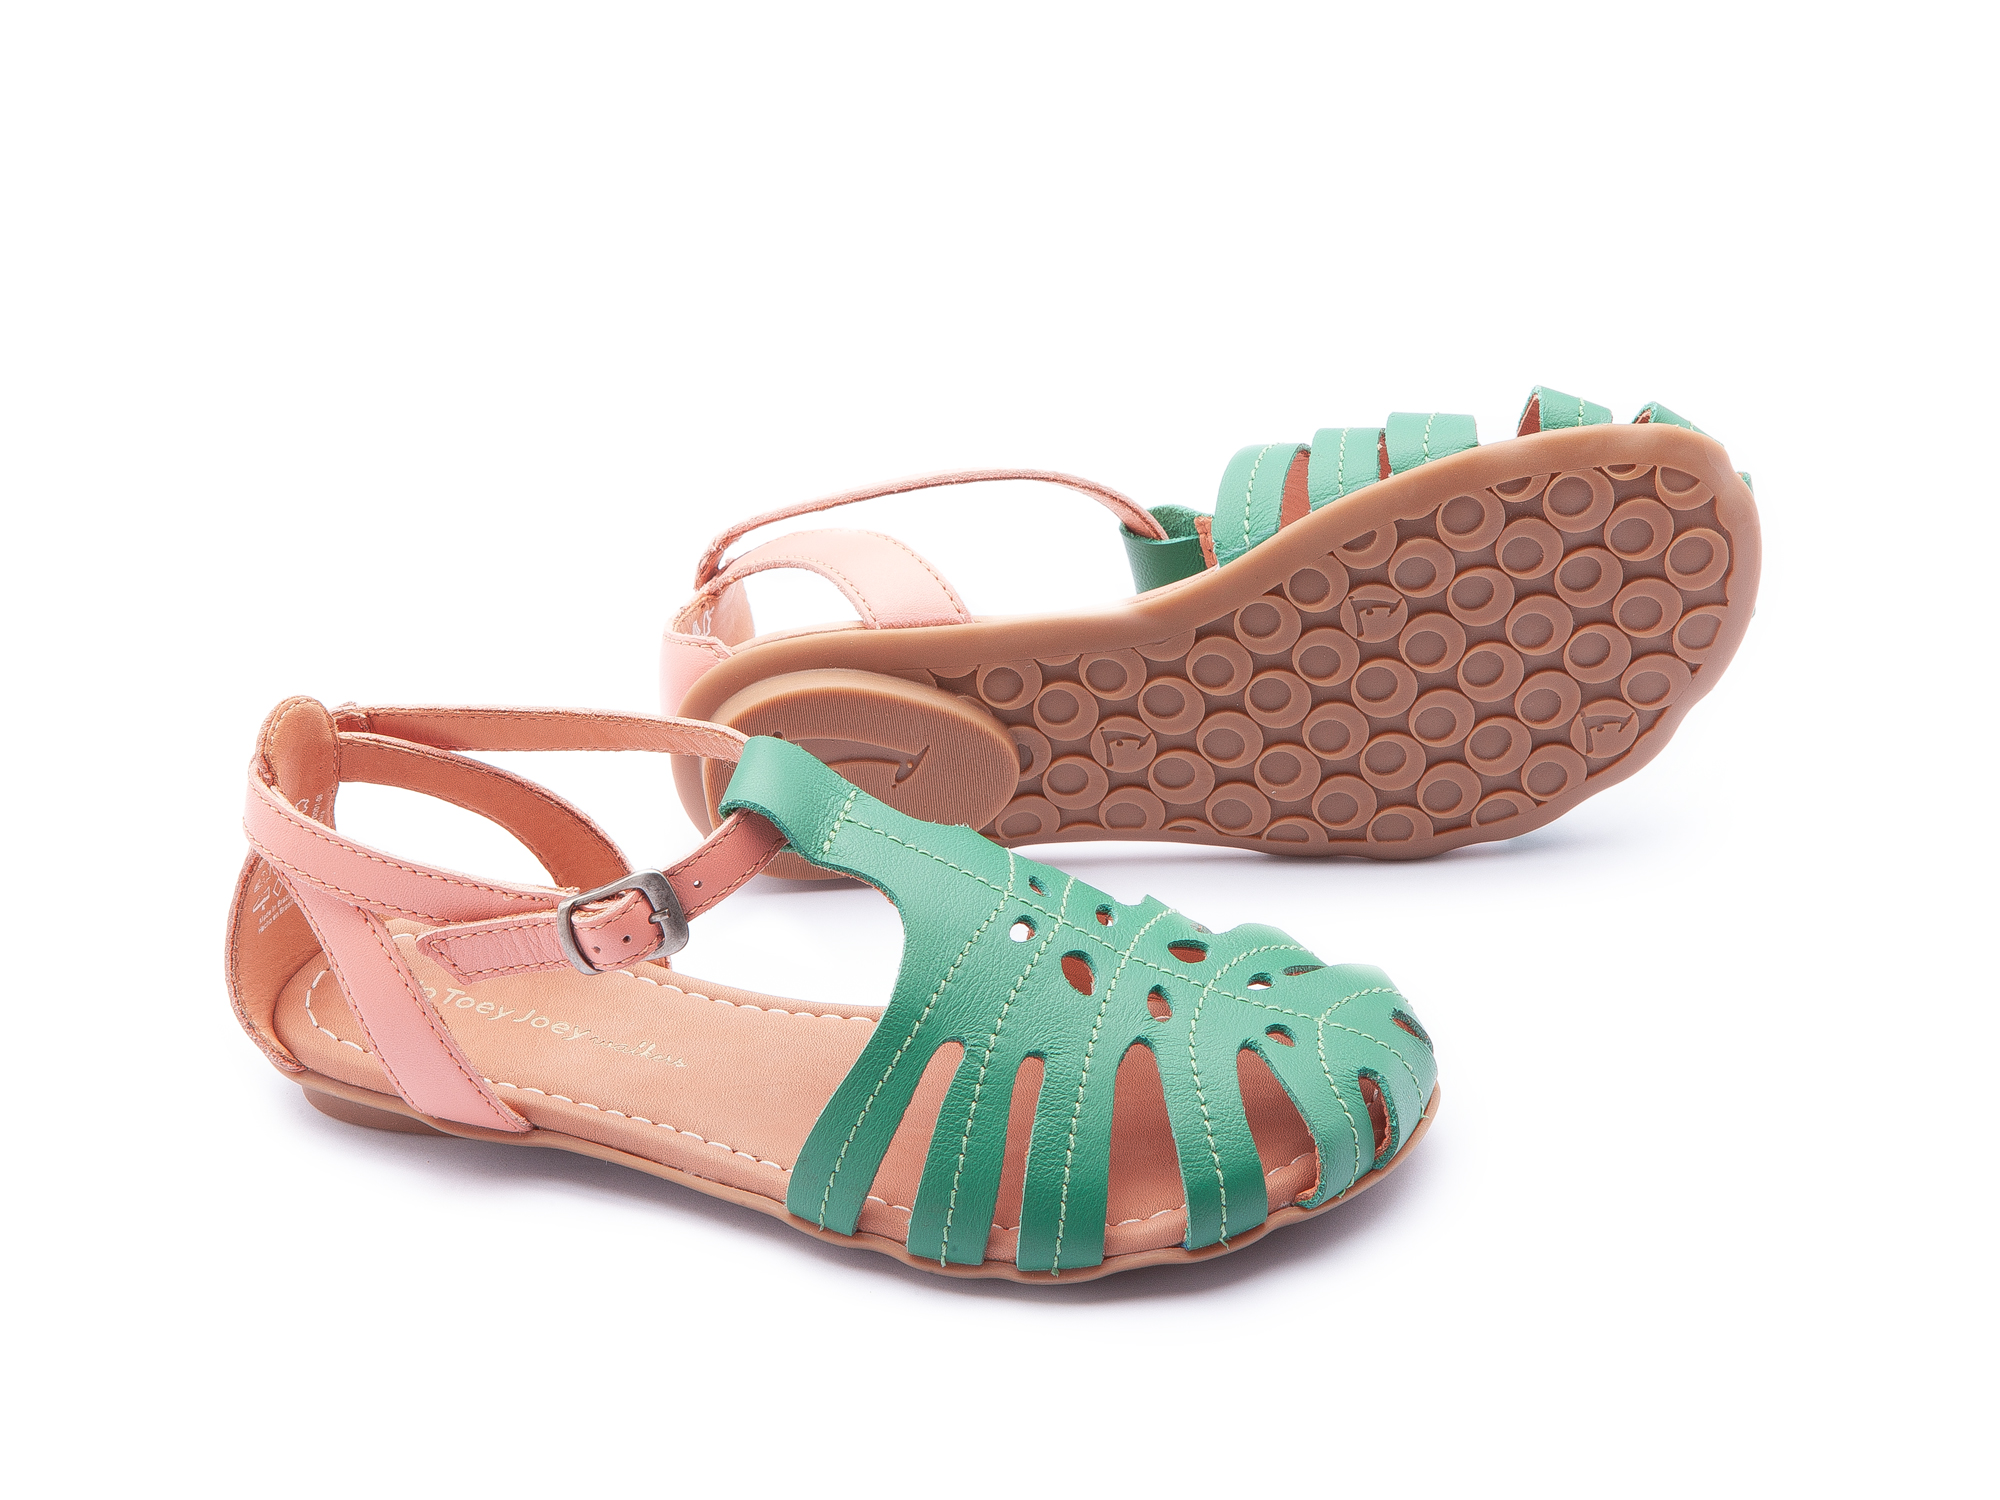 Sandália Tropical Green Leaf/ Flamingo Junior 4 à 8 anos - 2